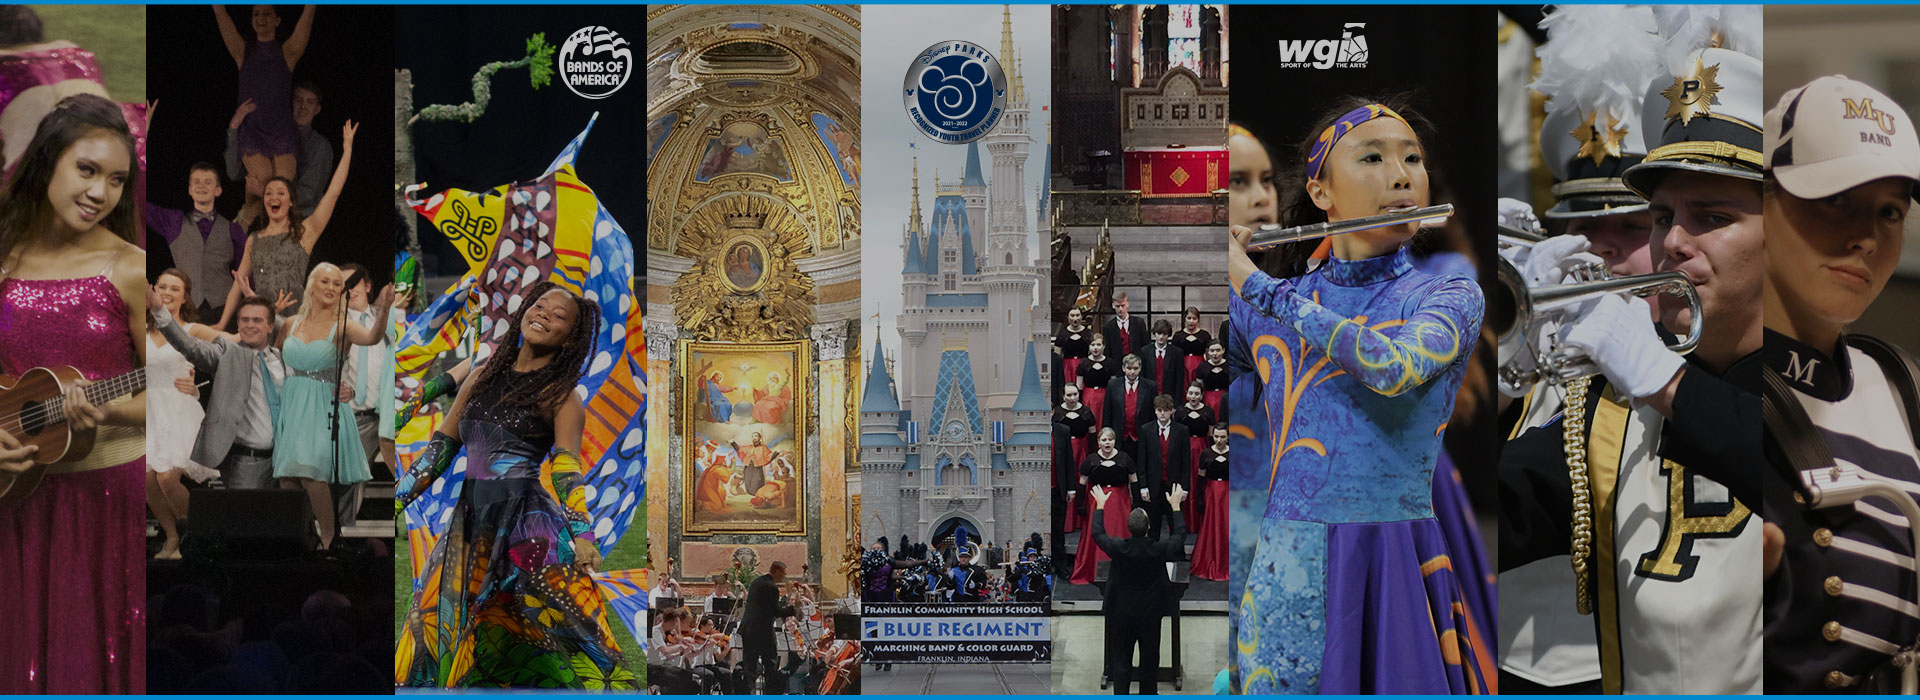 Travel planner for the finest bands, choirs and orchestras in the world.